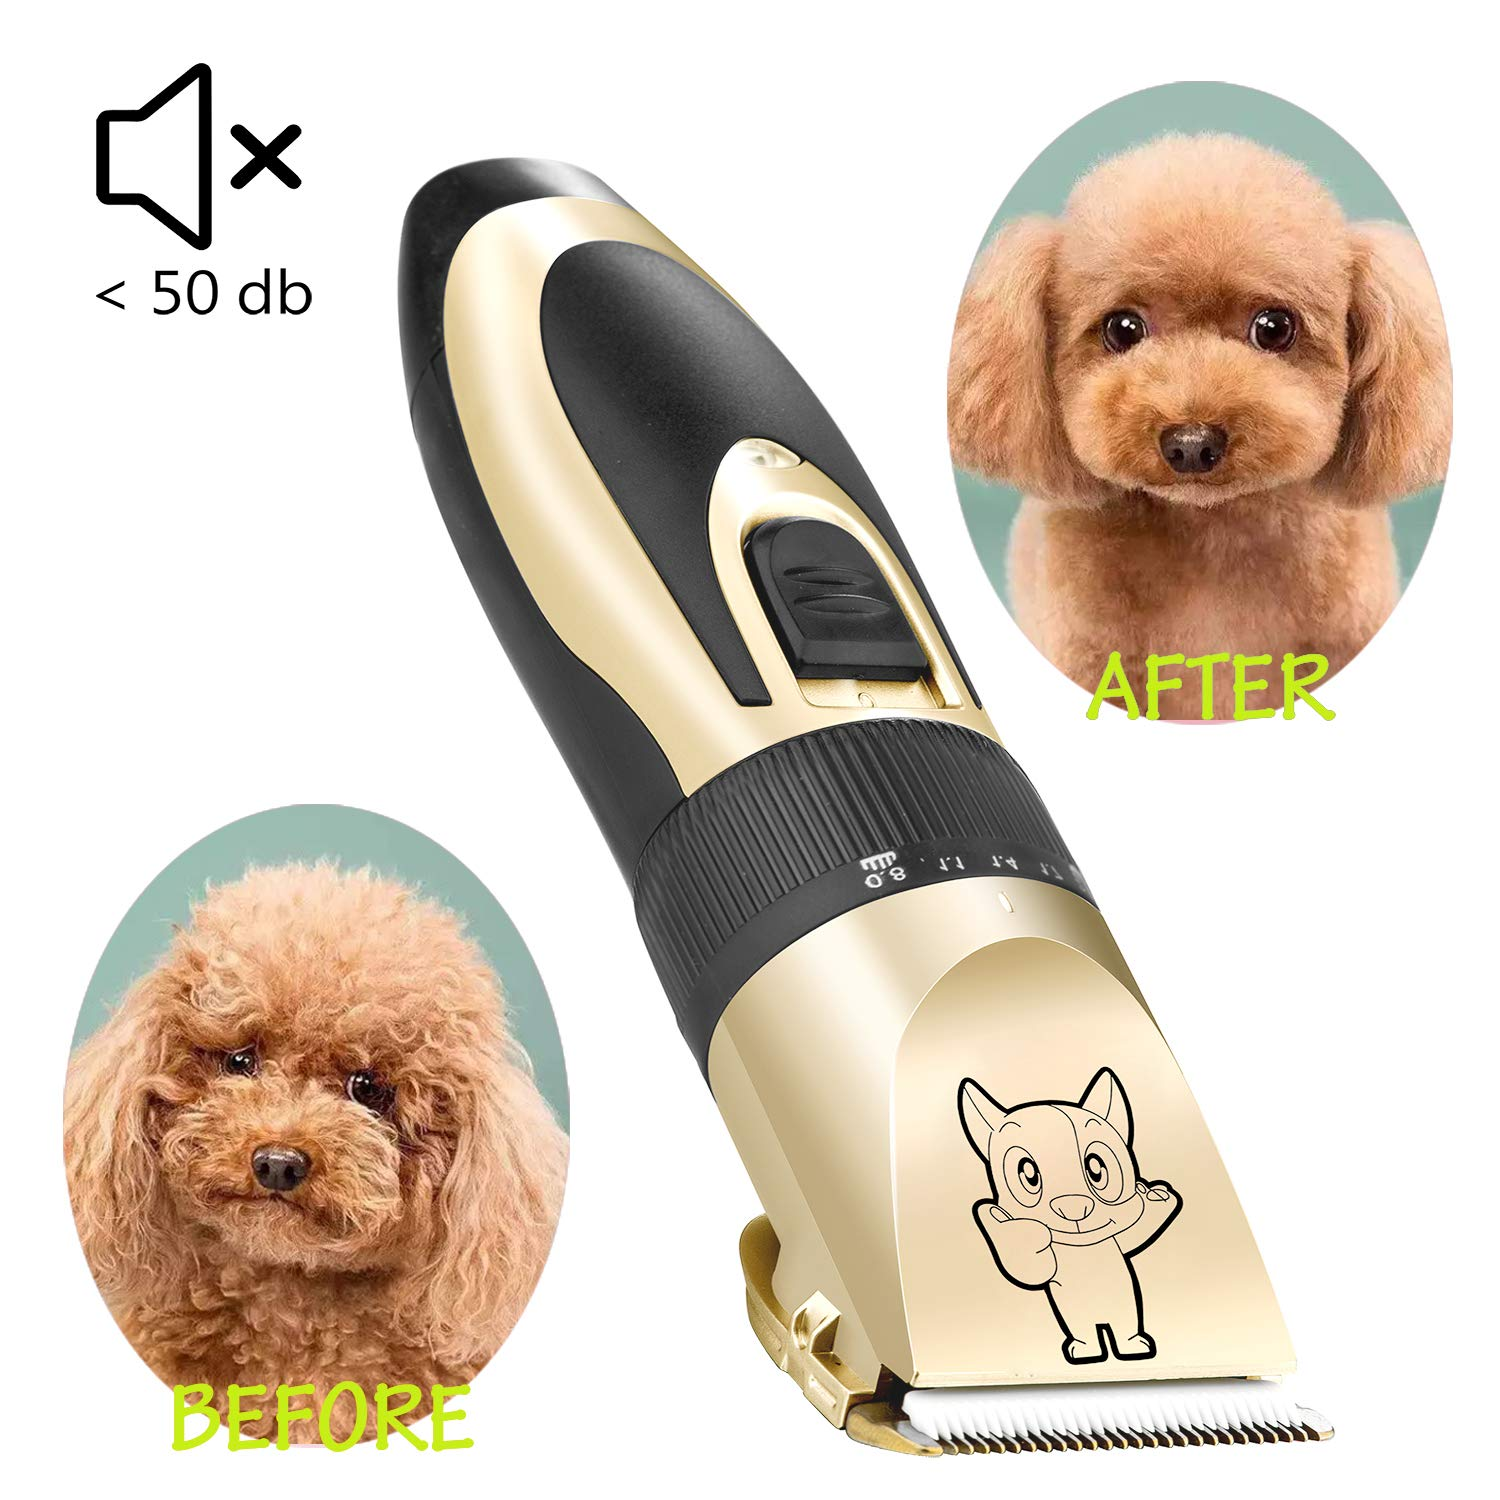 Dog Grooming Kit Clippers, Low Noise, Electric Quiet, Rechargeable, Cordless, Pet Hair Thick Coats Clippers Trimmers Set, Suitable for Dogs, Cats, and Other Pets by Highdas